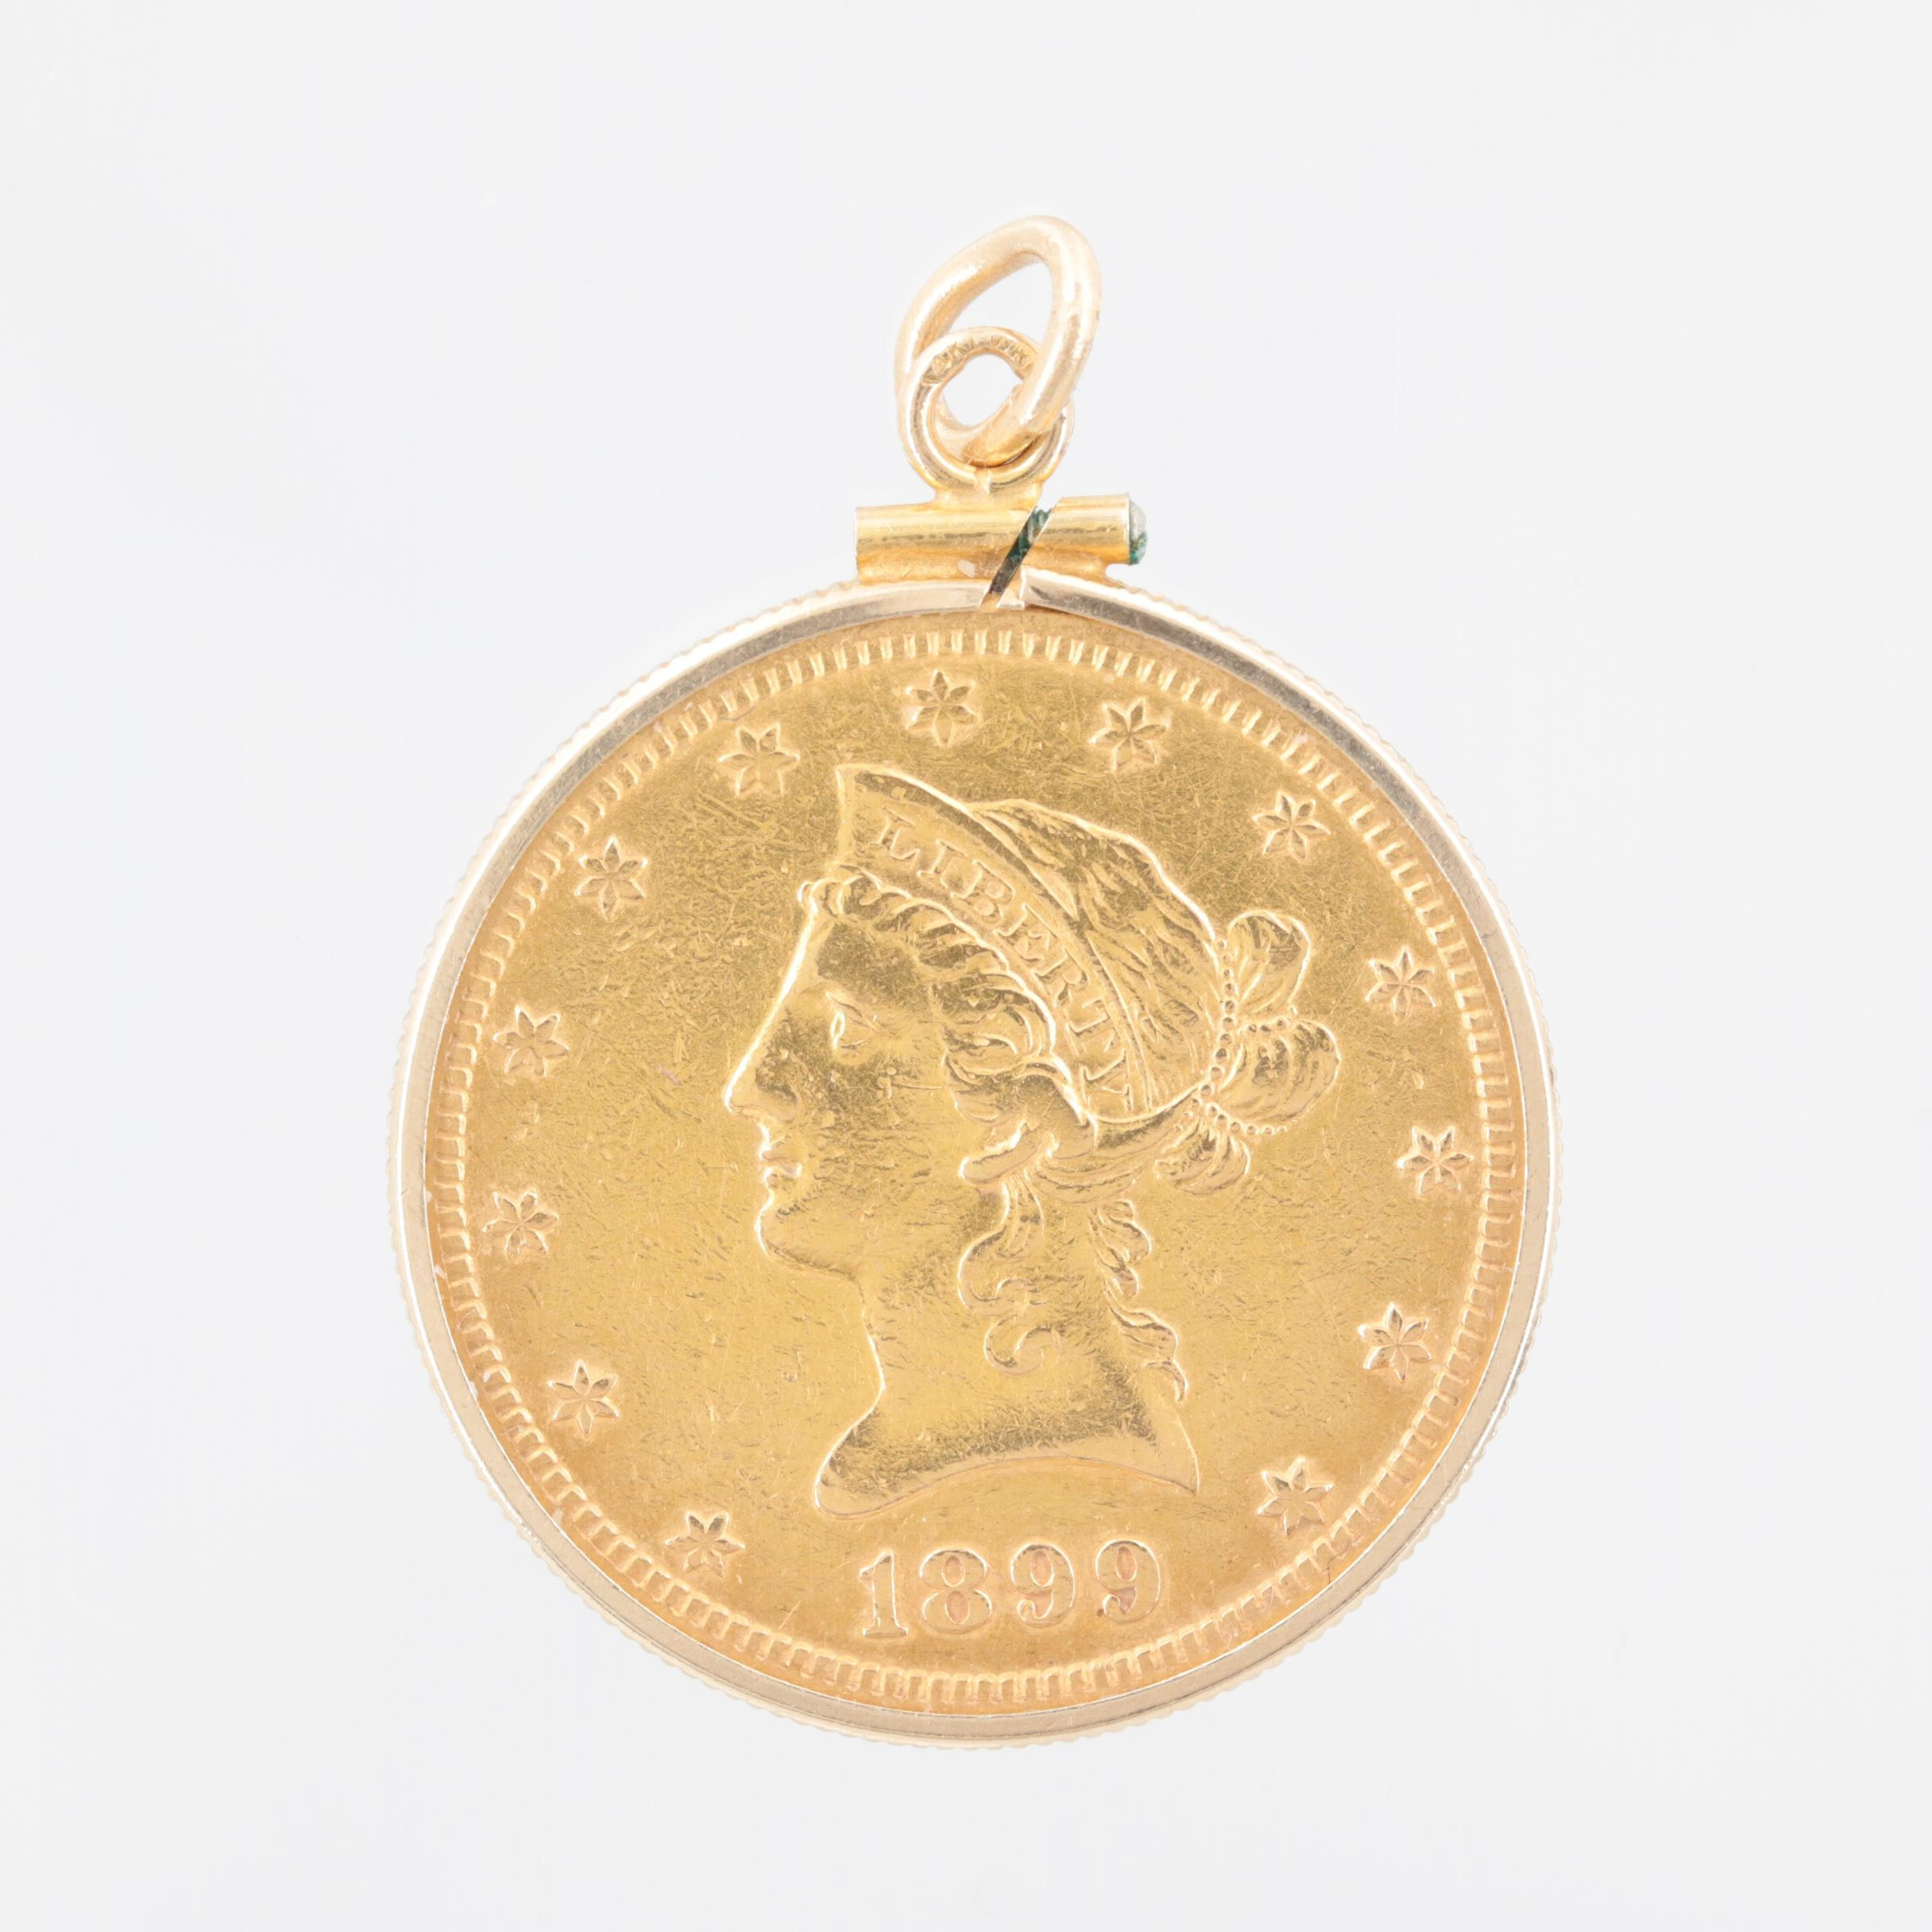 14K Yellow Gold Pendant with a 1899-S Liberty Head $10 Gold Eagle